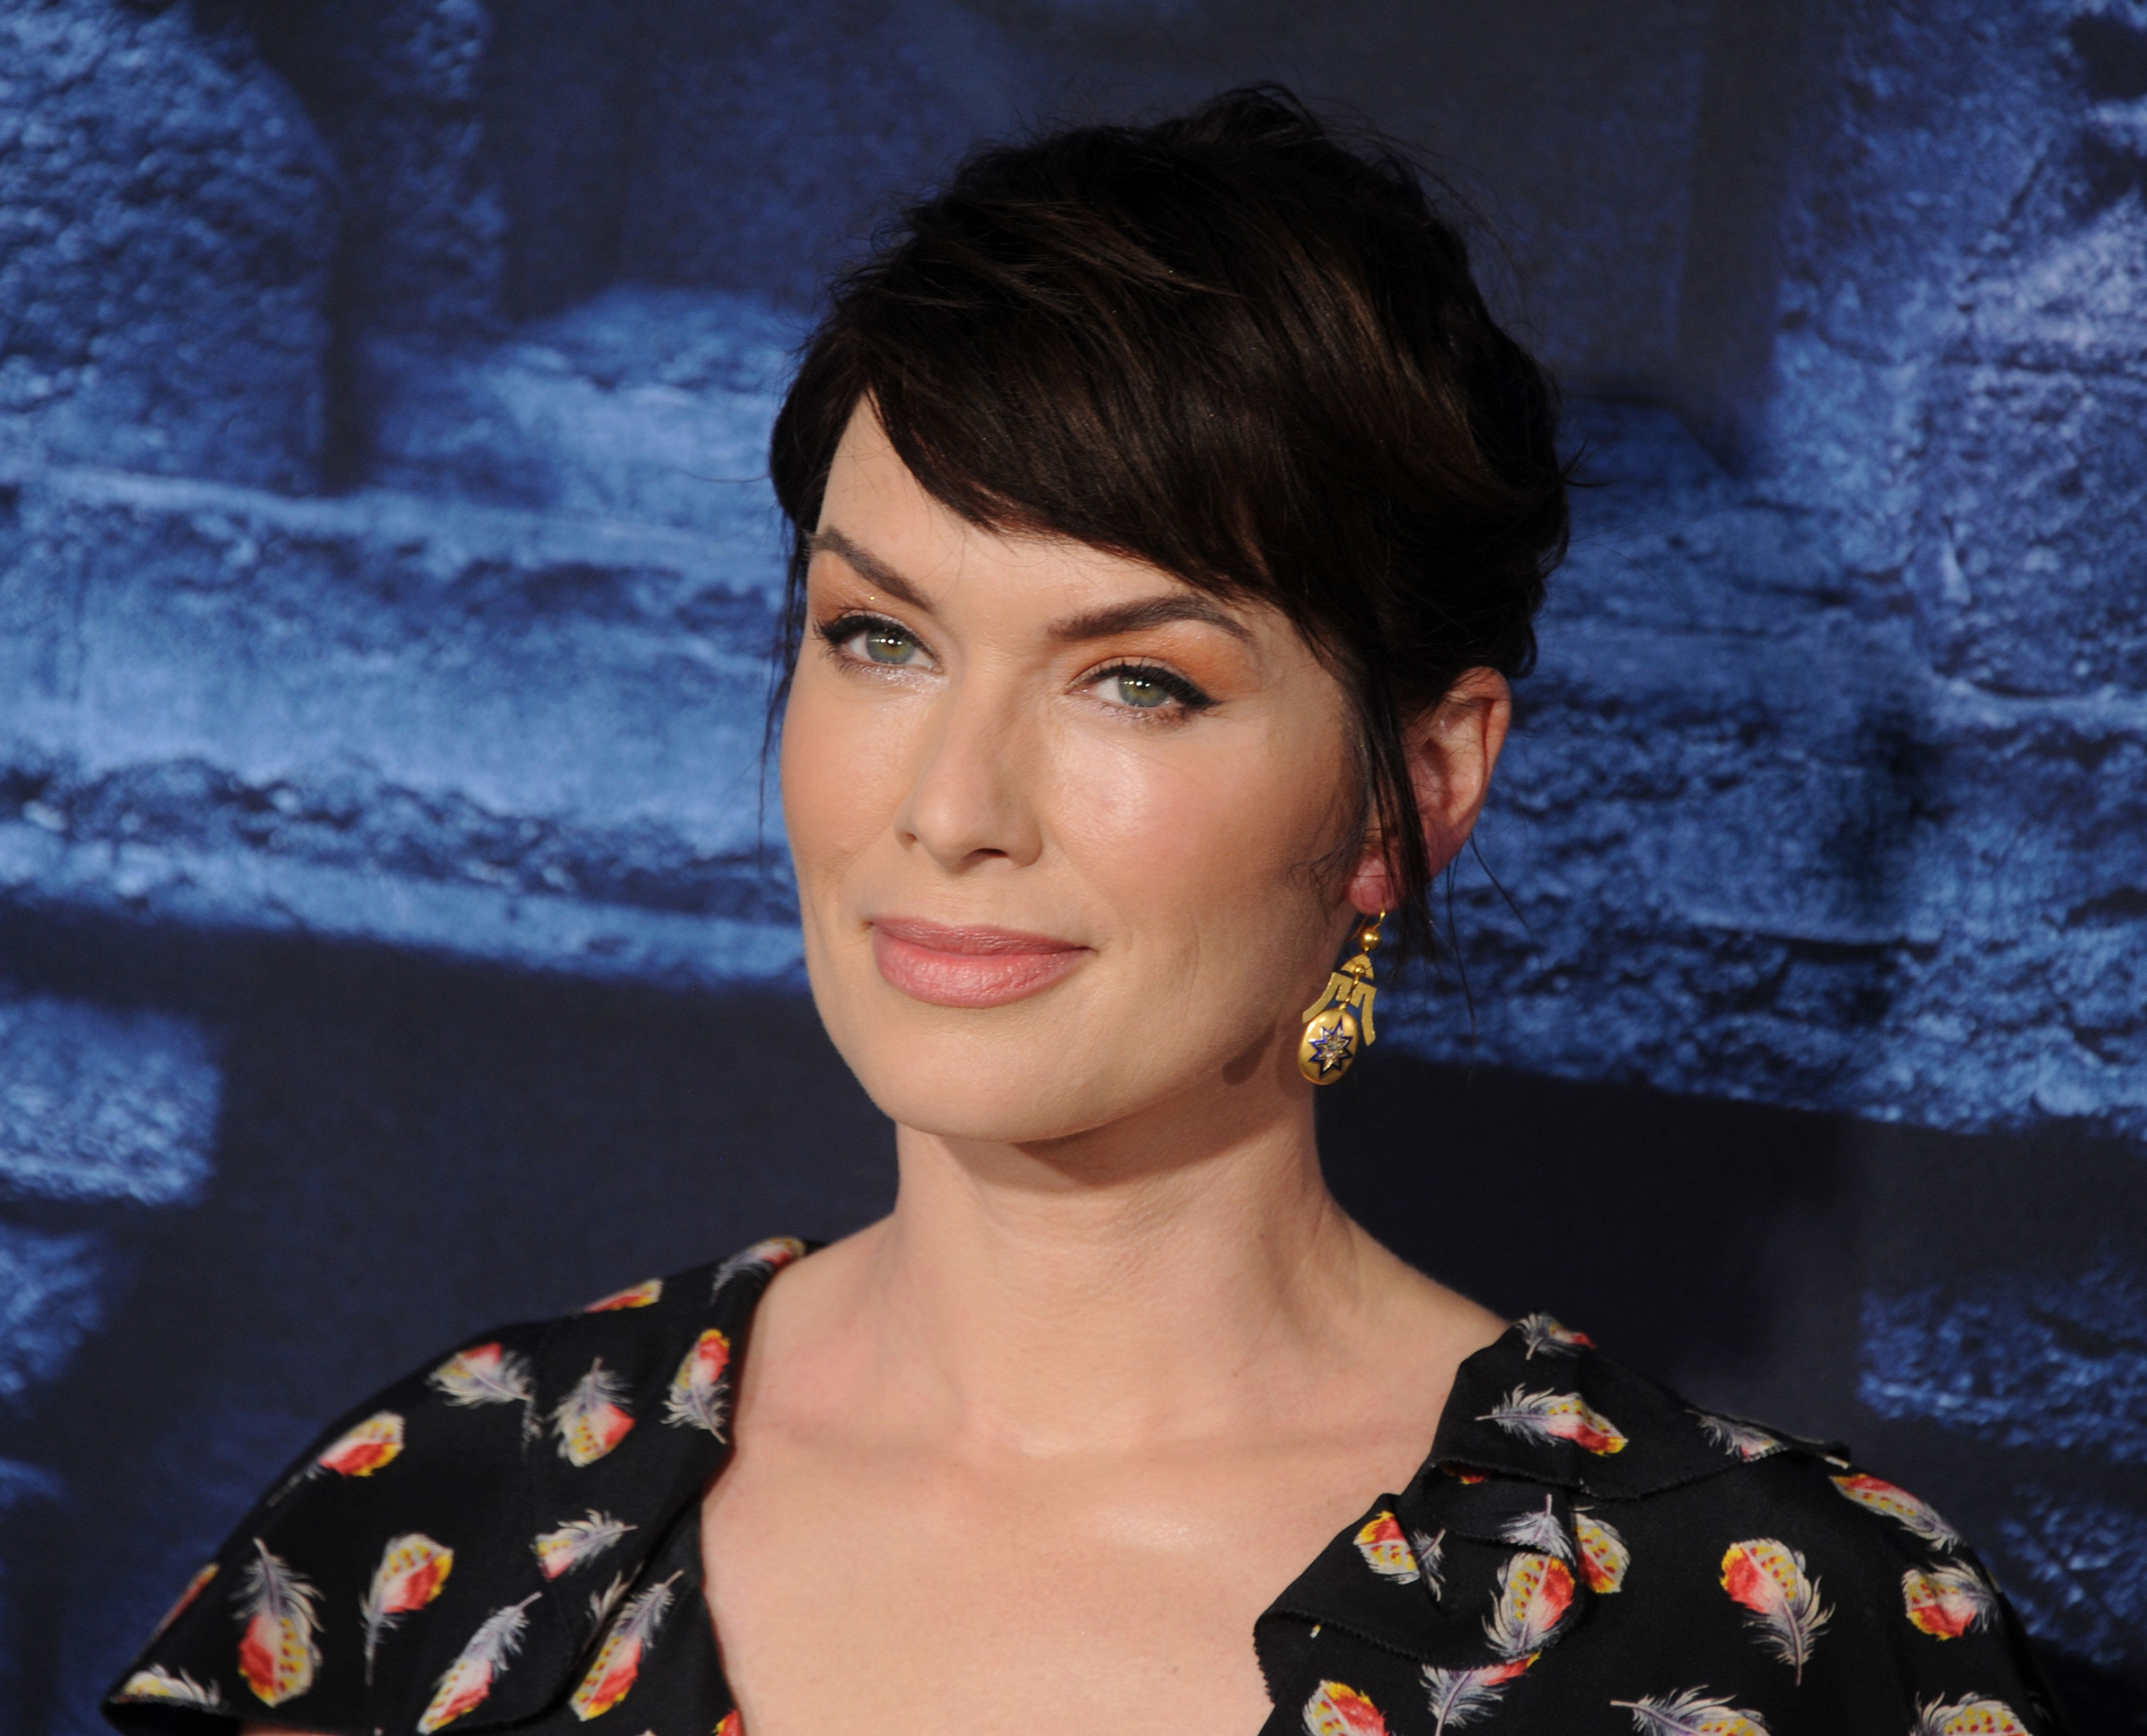 HOLLYWOOD, CALIFORNIA - APRIL 10:  Actress Lena Headey arrives at the premiere of HBO's 'Game Of Thrones' Season 6 at TCL Chinese Theatre on April 10, 2016 in Hollywood, California.  (Photo by Gregg DeGuire/WireImage)